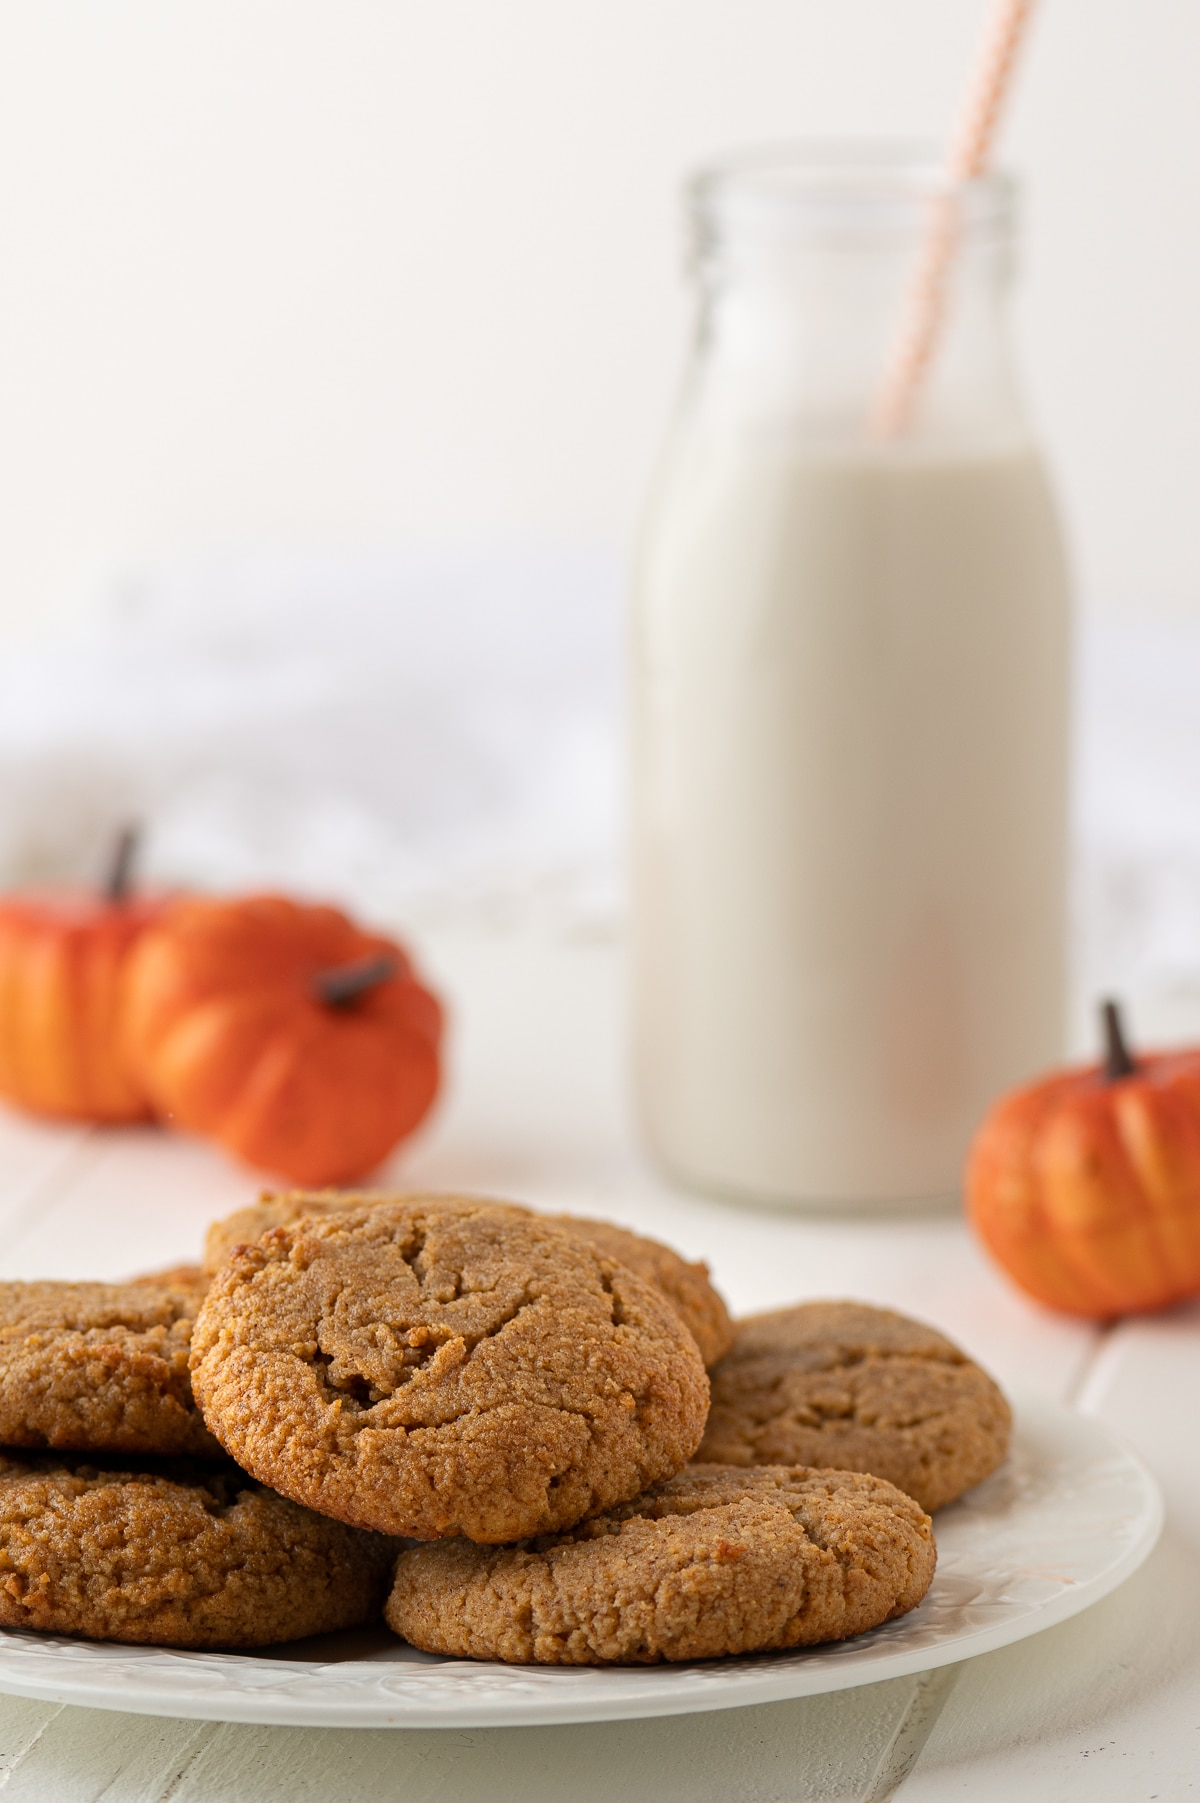 Pumpkin cookies on a white plate with a glass of almond milk and mini orange pumpkins in the background